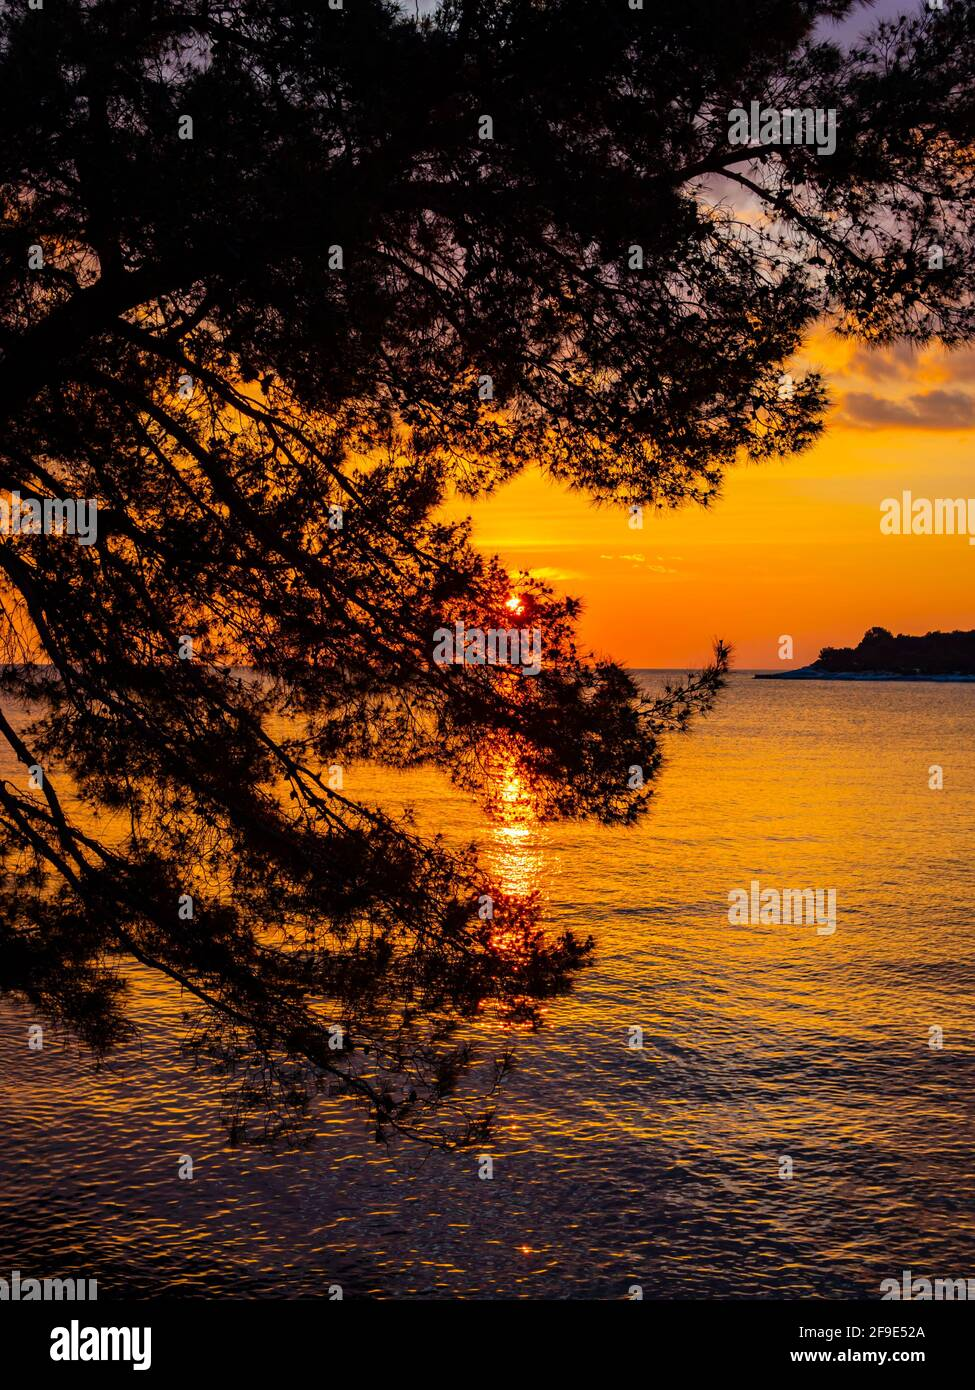 Mediterranean sunset in nature horizon sea seascape silhouette tree branches leaves Stock Photo